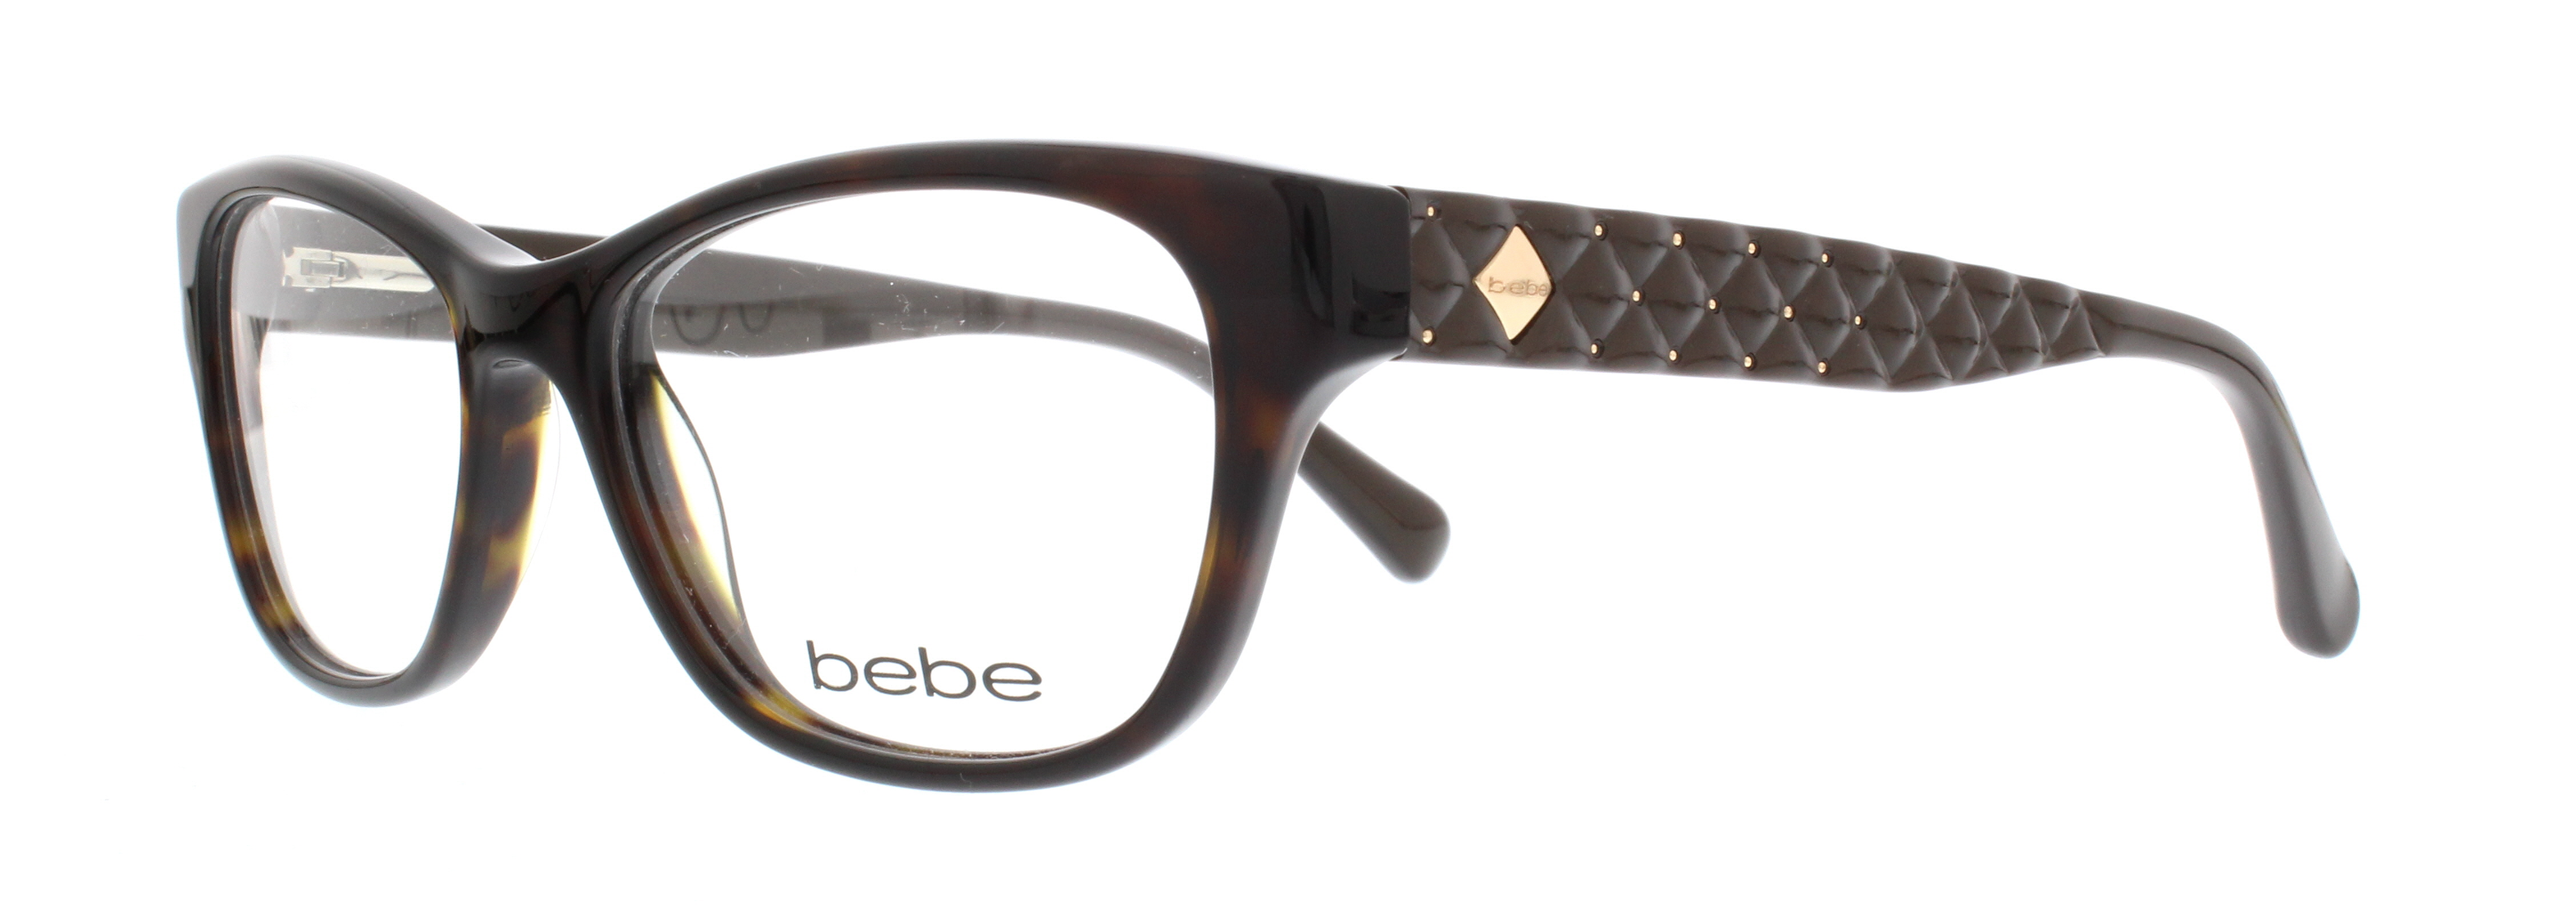 49d3e115affe Designer Frames Outlet. Bebe BB5099 Next Big Thing